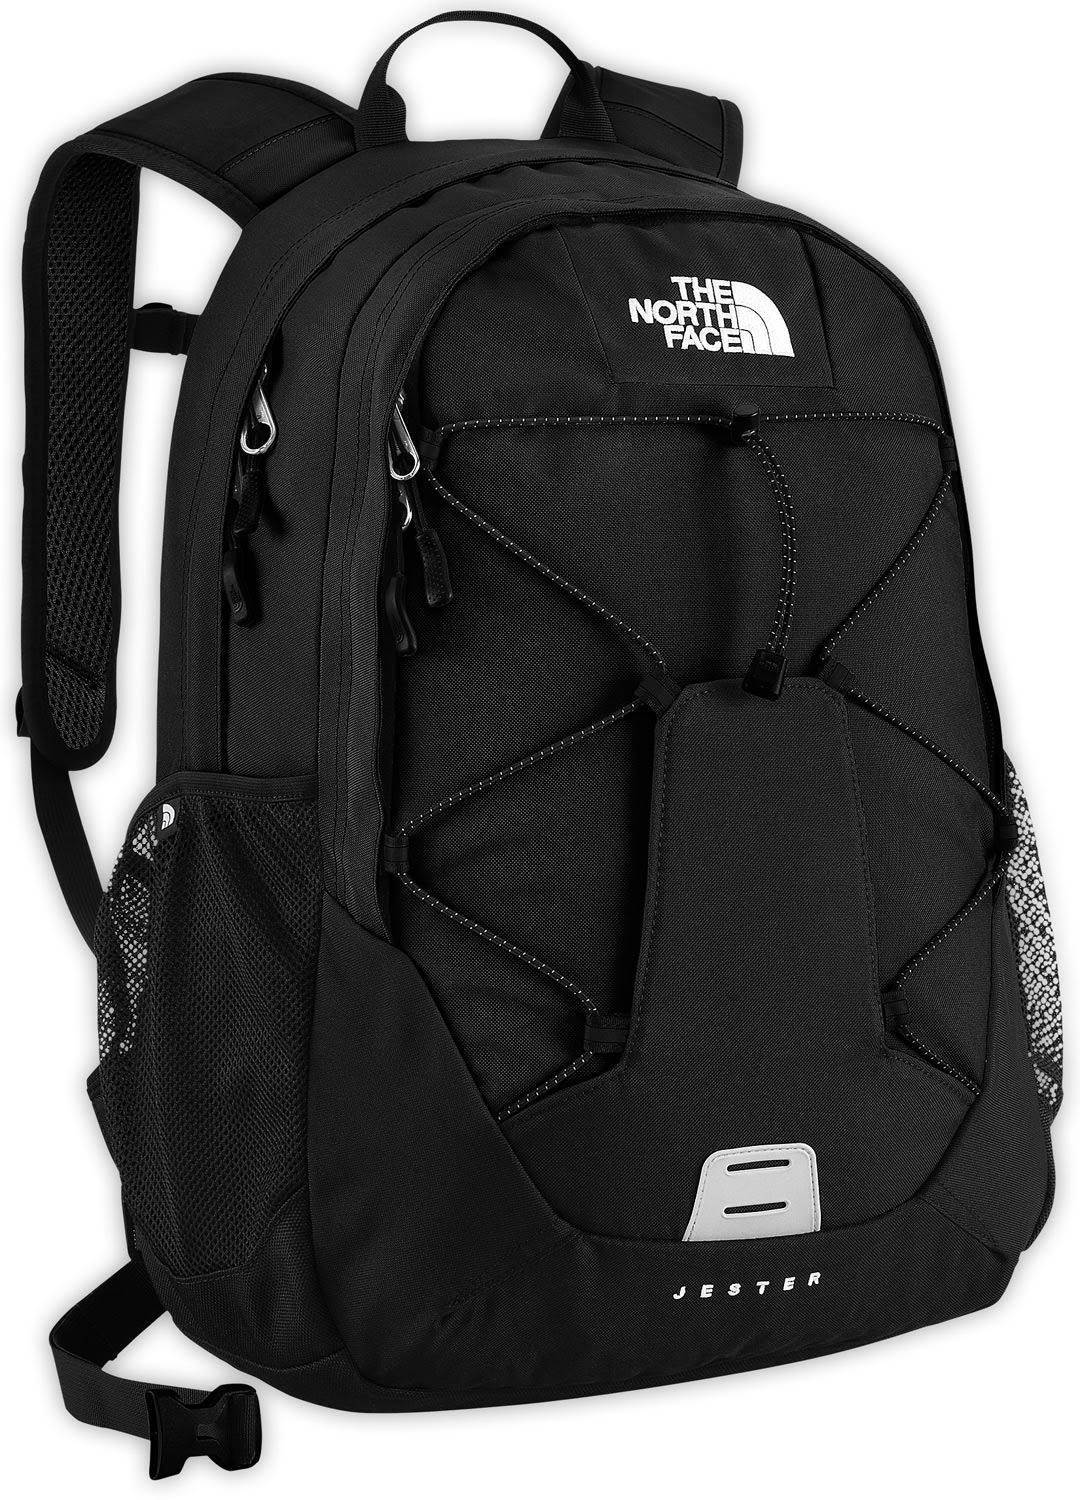 The North Face Jester Backpack TNF Black 27L